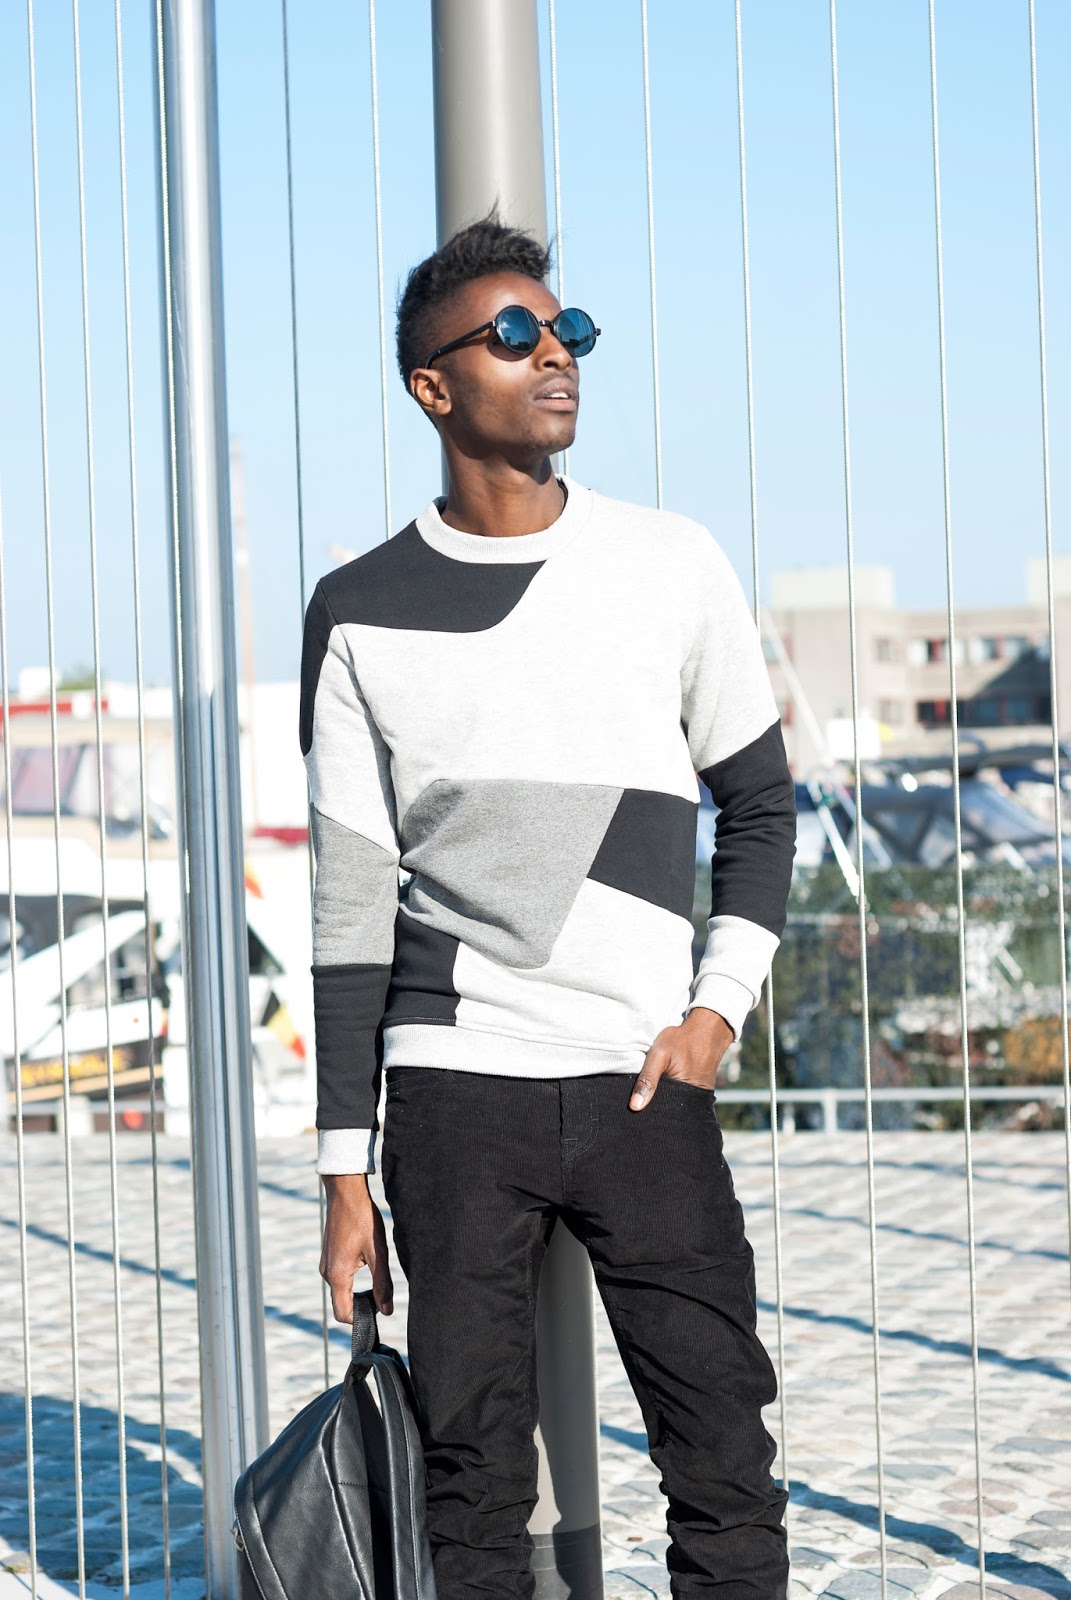 Time to bring out the special winter sweater to keep you warm and stylish during Winter's cold. Read 3 Tips on how to choose your special sweater for Fall/Winter on Jon The Gold menswear blogger styleguide from Antwerp, Belgim - Streetstyle